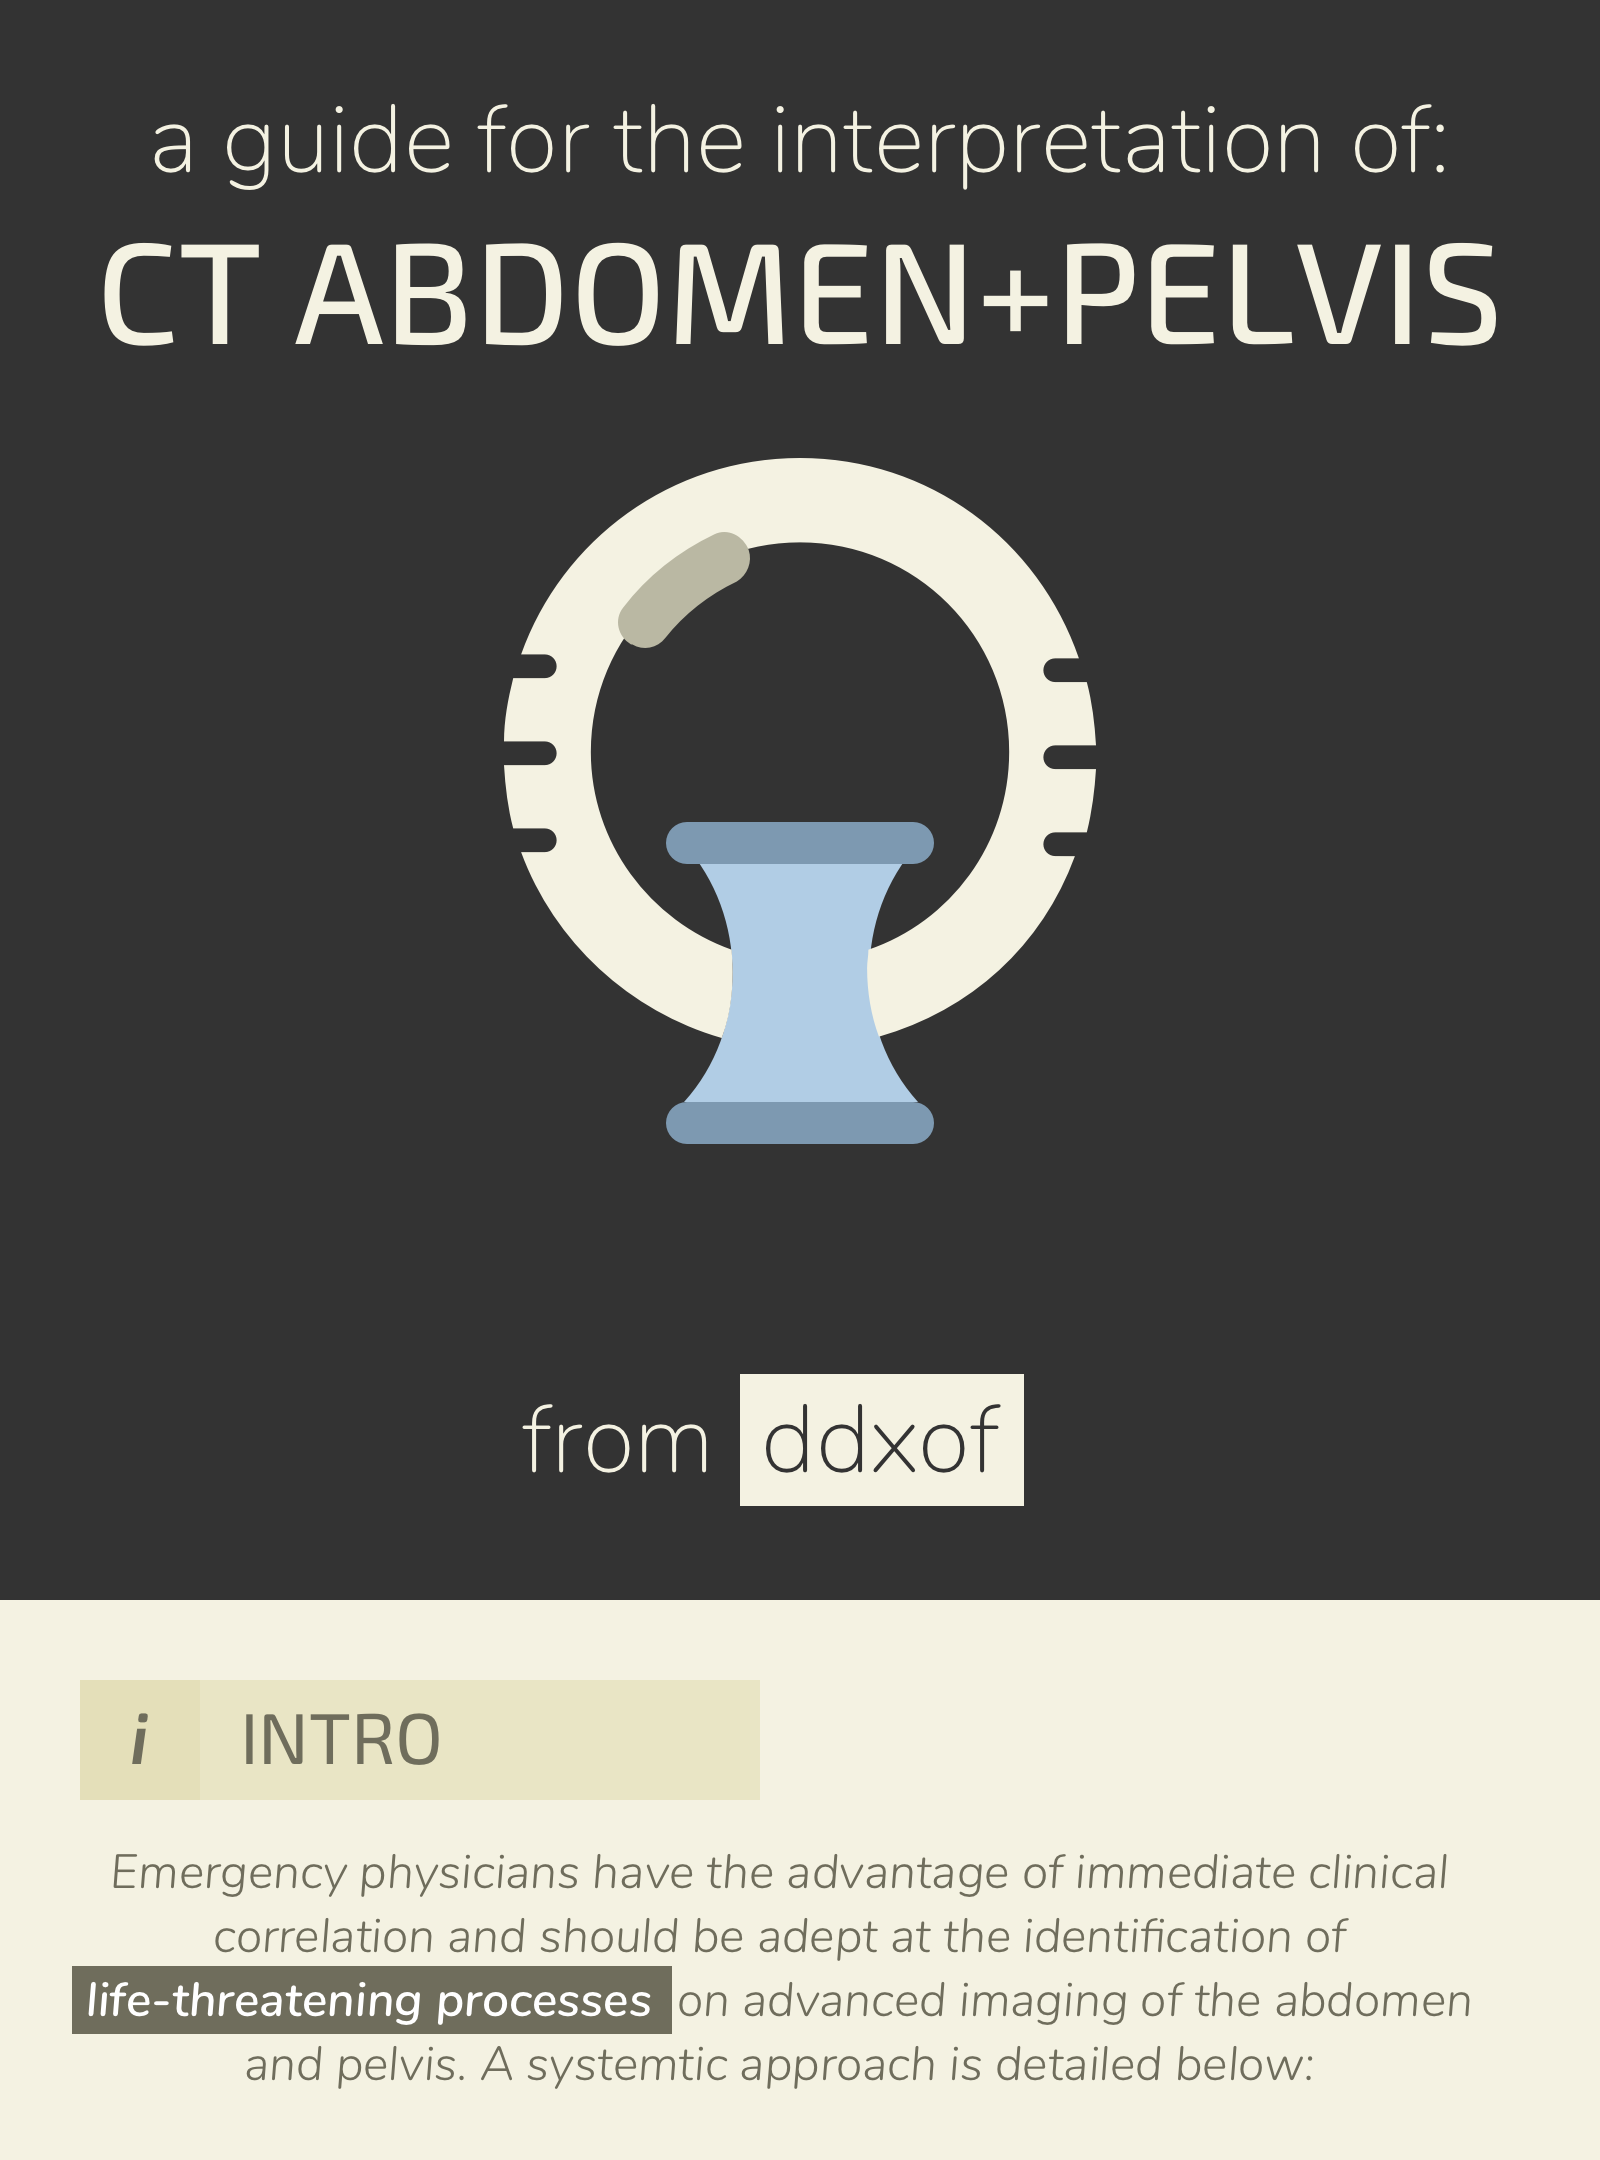 Infographic: CT Abdomen/Pelvis Interpretation